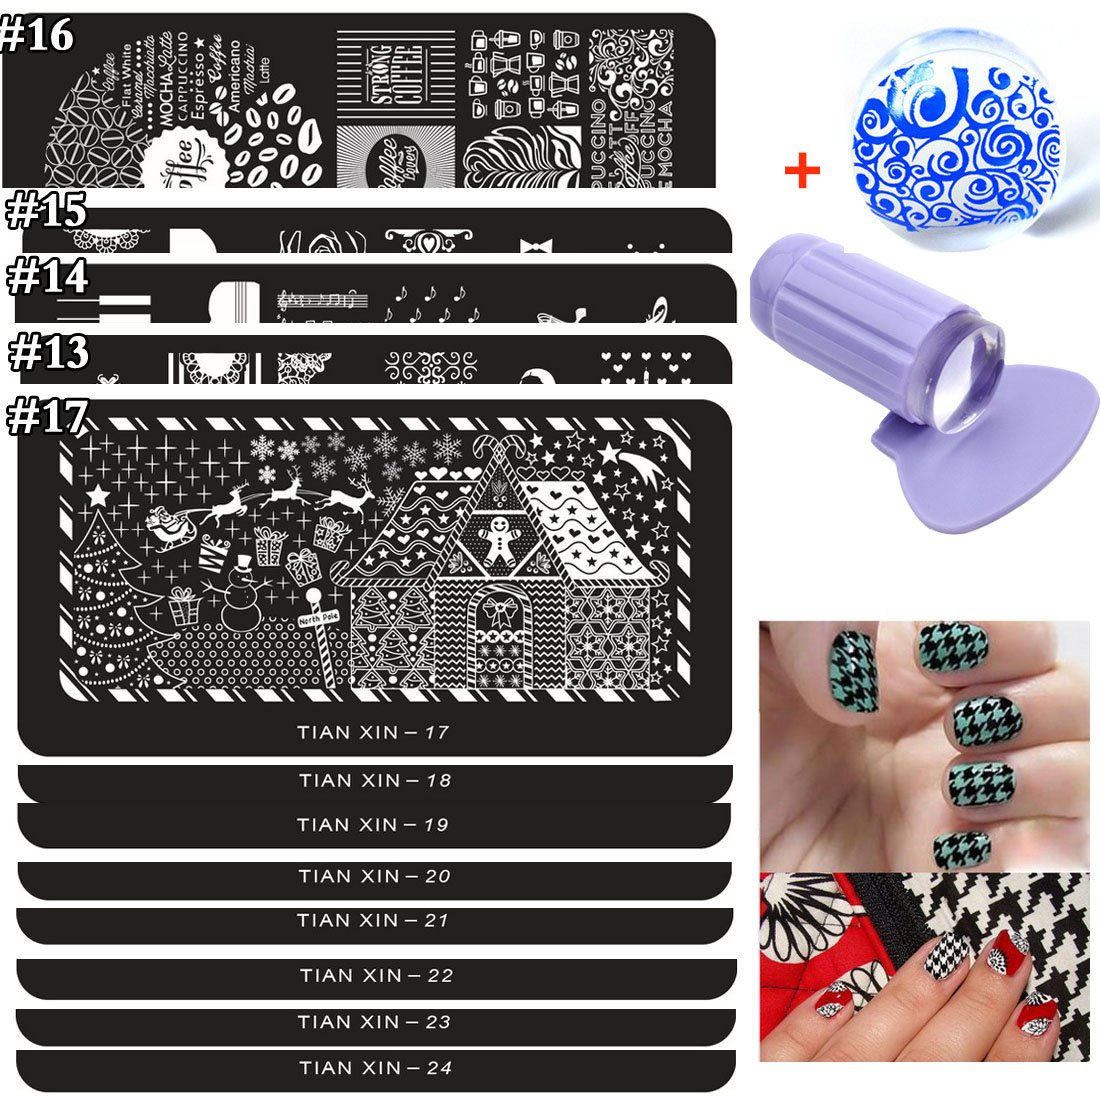 Lookathot 3/12/24/30 Nail Art Image Stamp Stamping Plates with 1 Stamper, 1 Scraper NS09